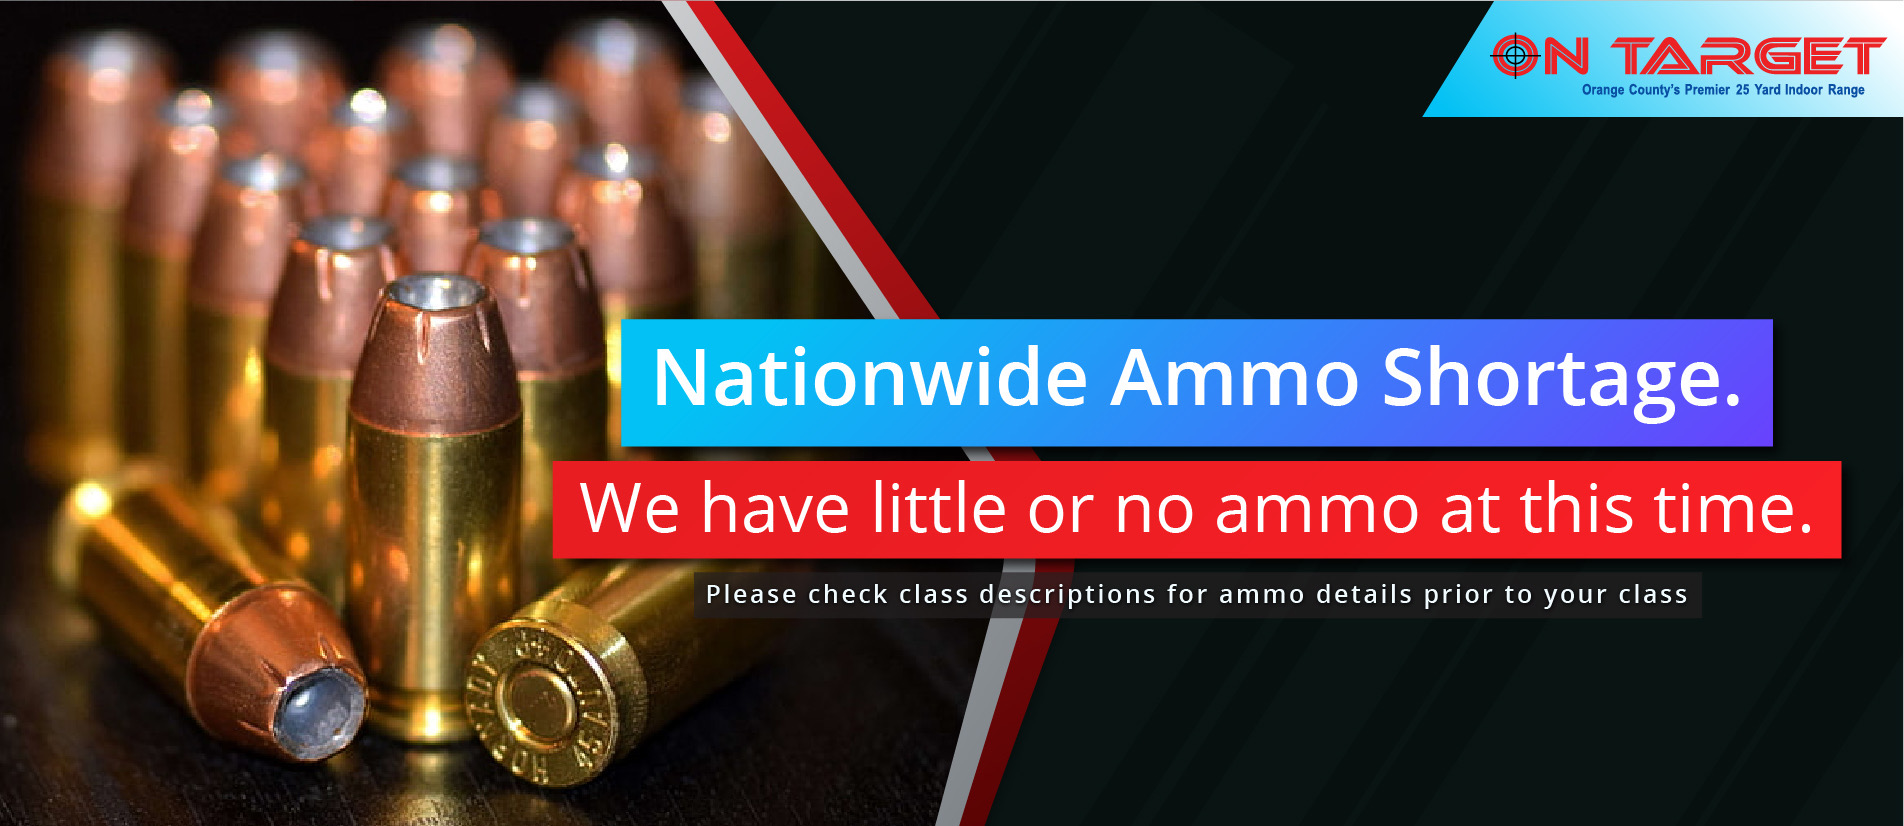 Nationwide Ammo Shortage